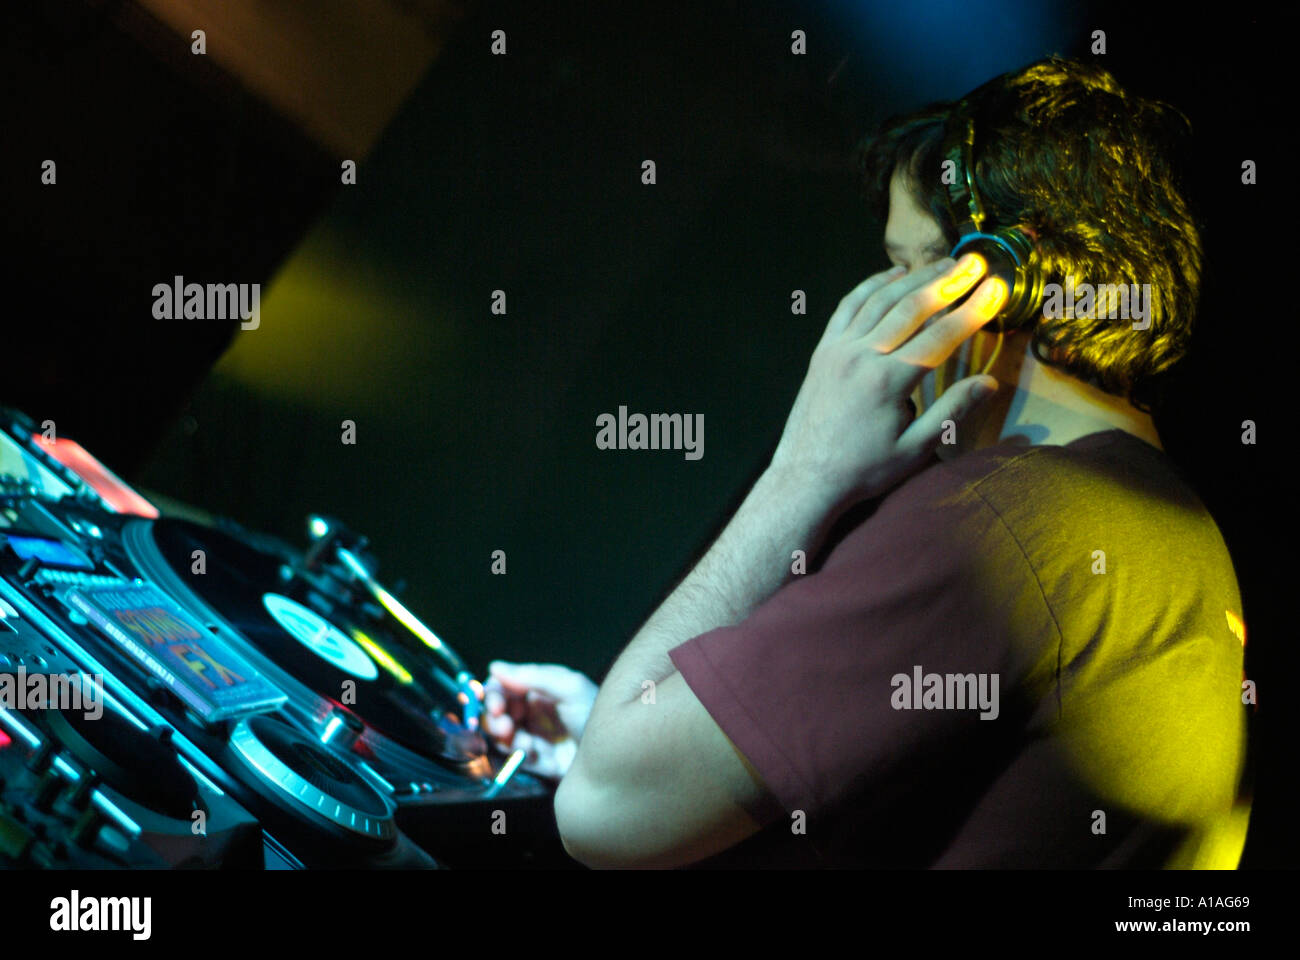 Club DJ Behind the Decks of a Nightclub Cutting in a Track on a Turntable - Stock Image